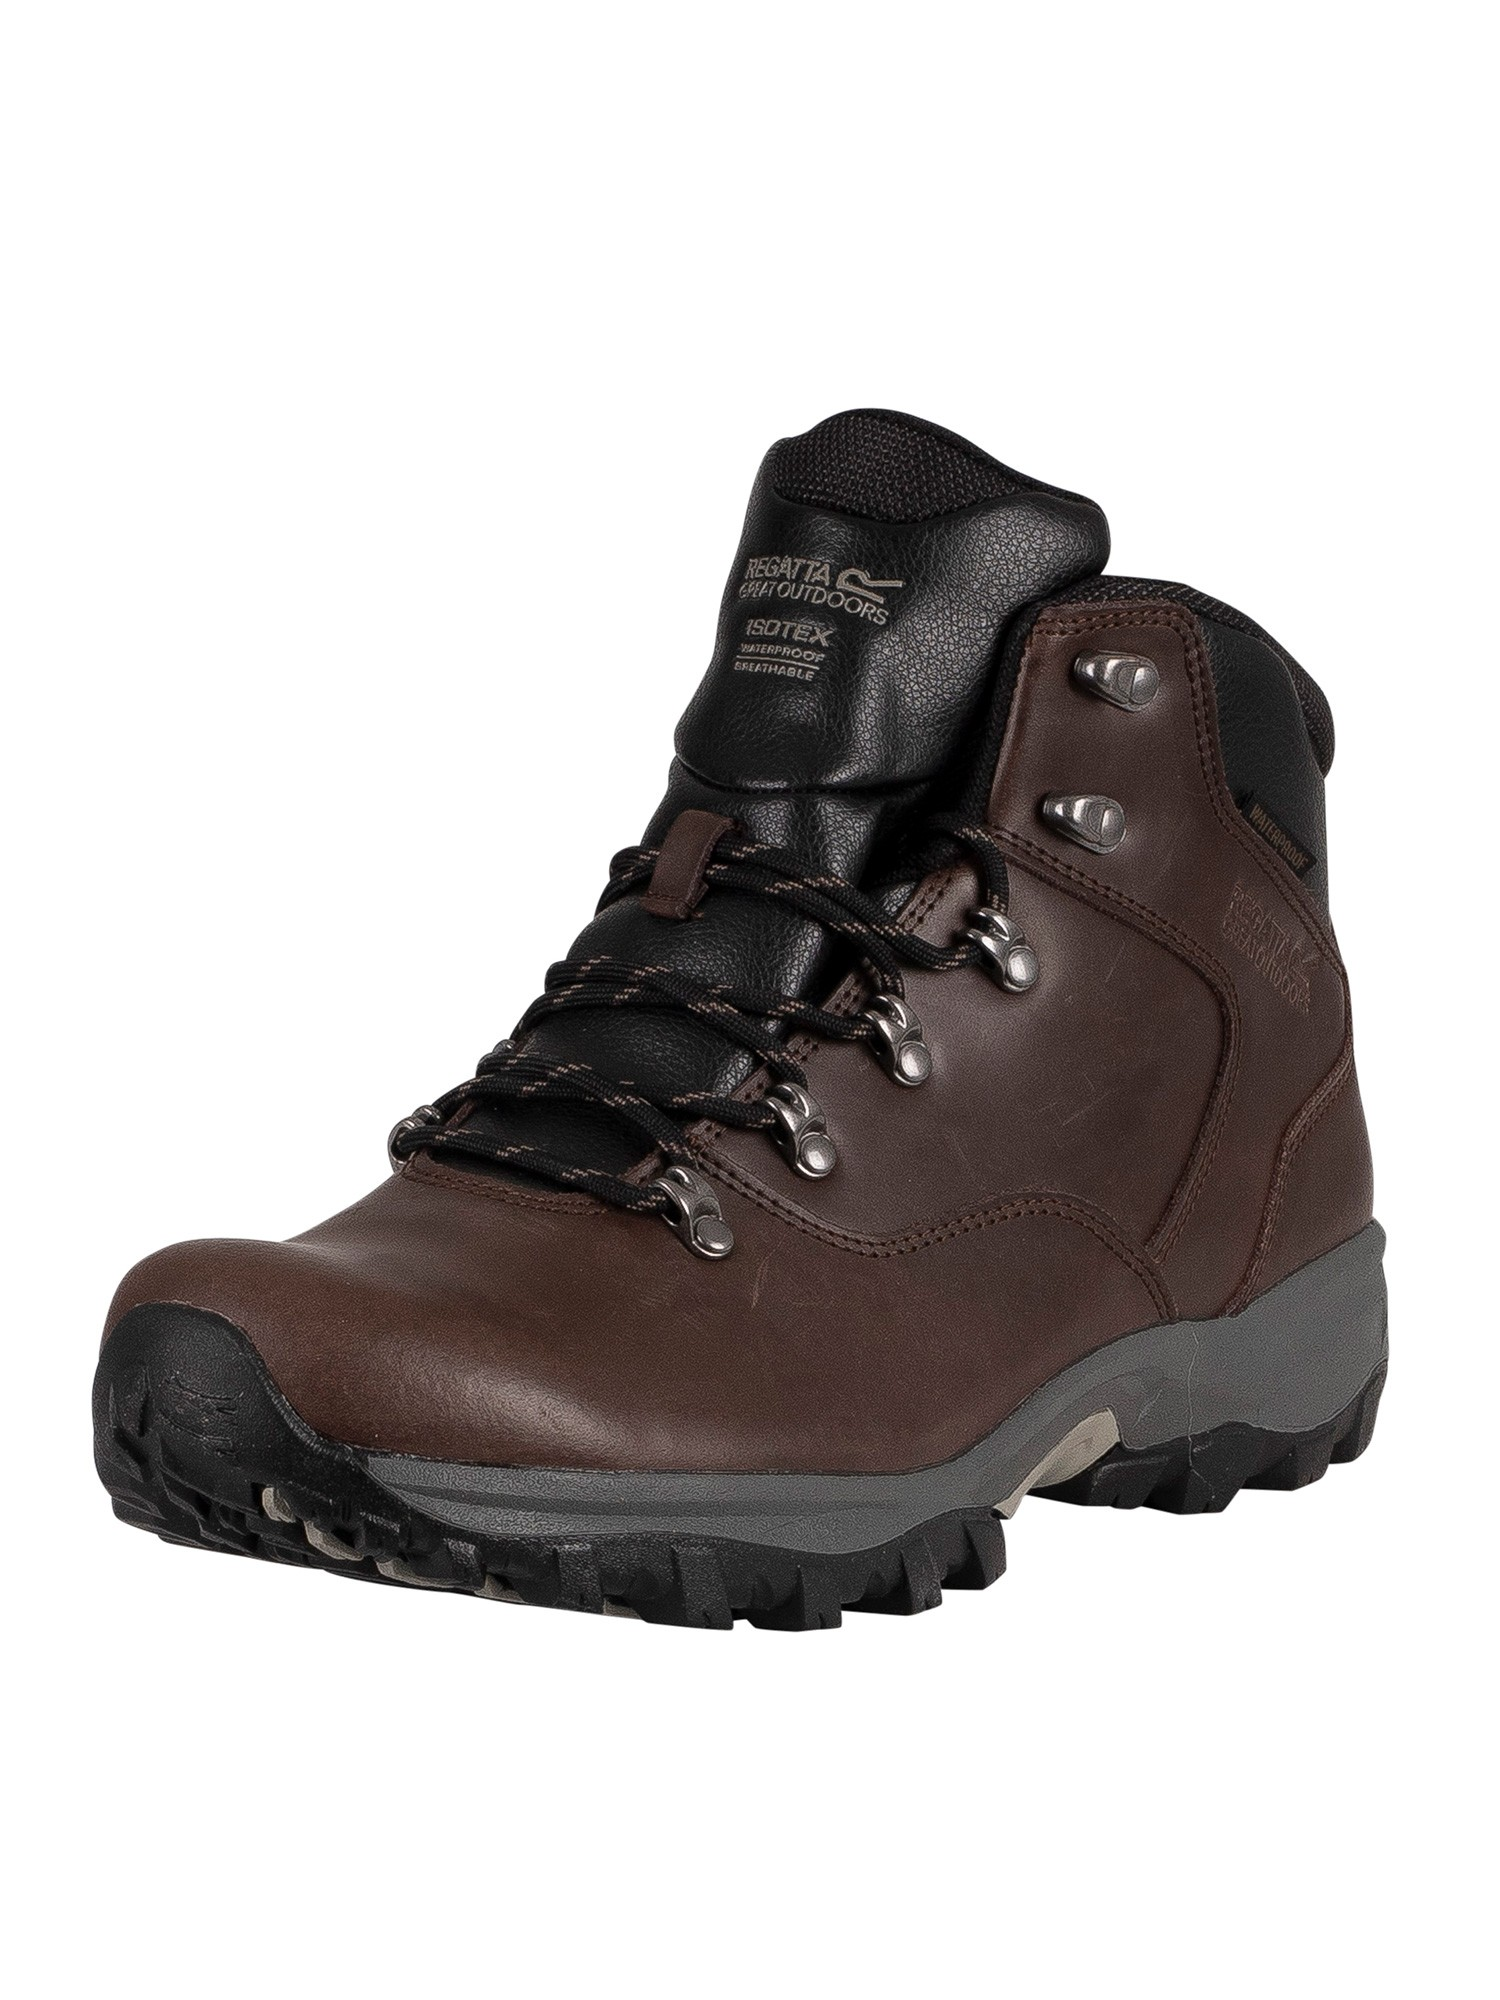 Bainsford Hiking Leather Boots